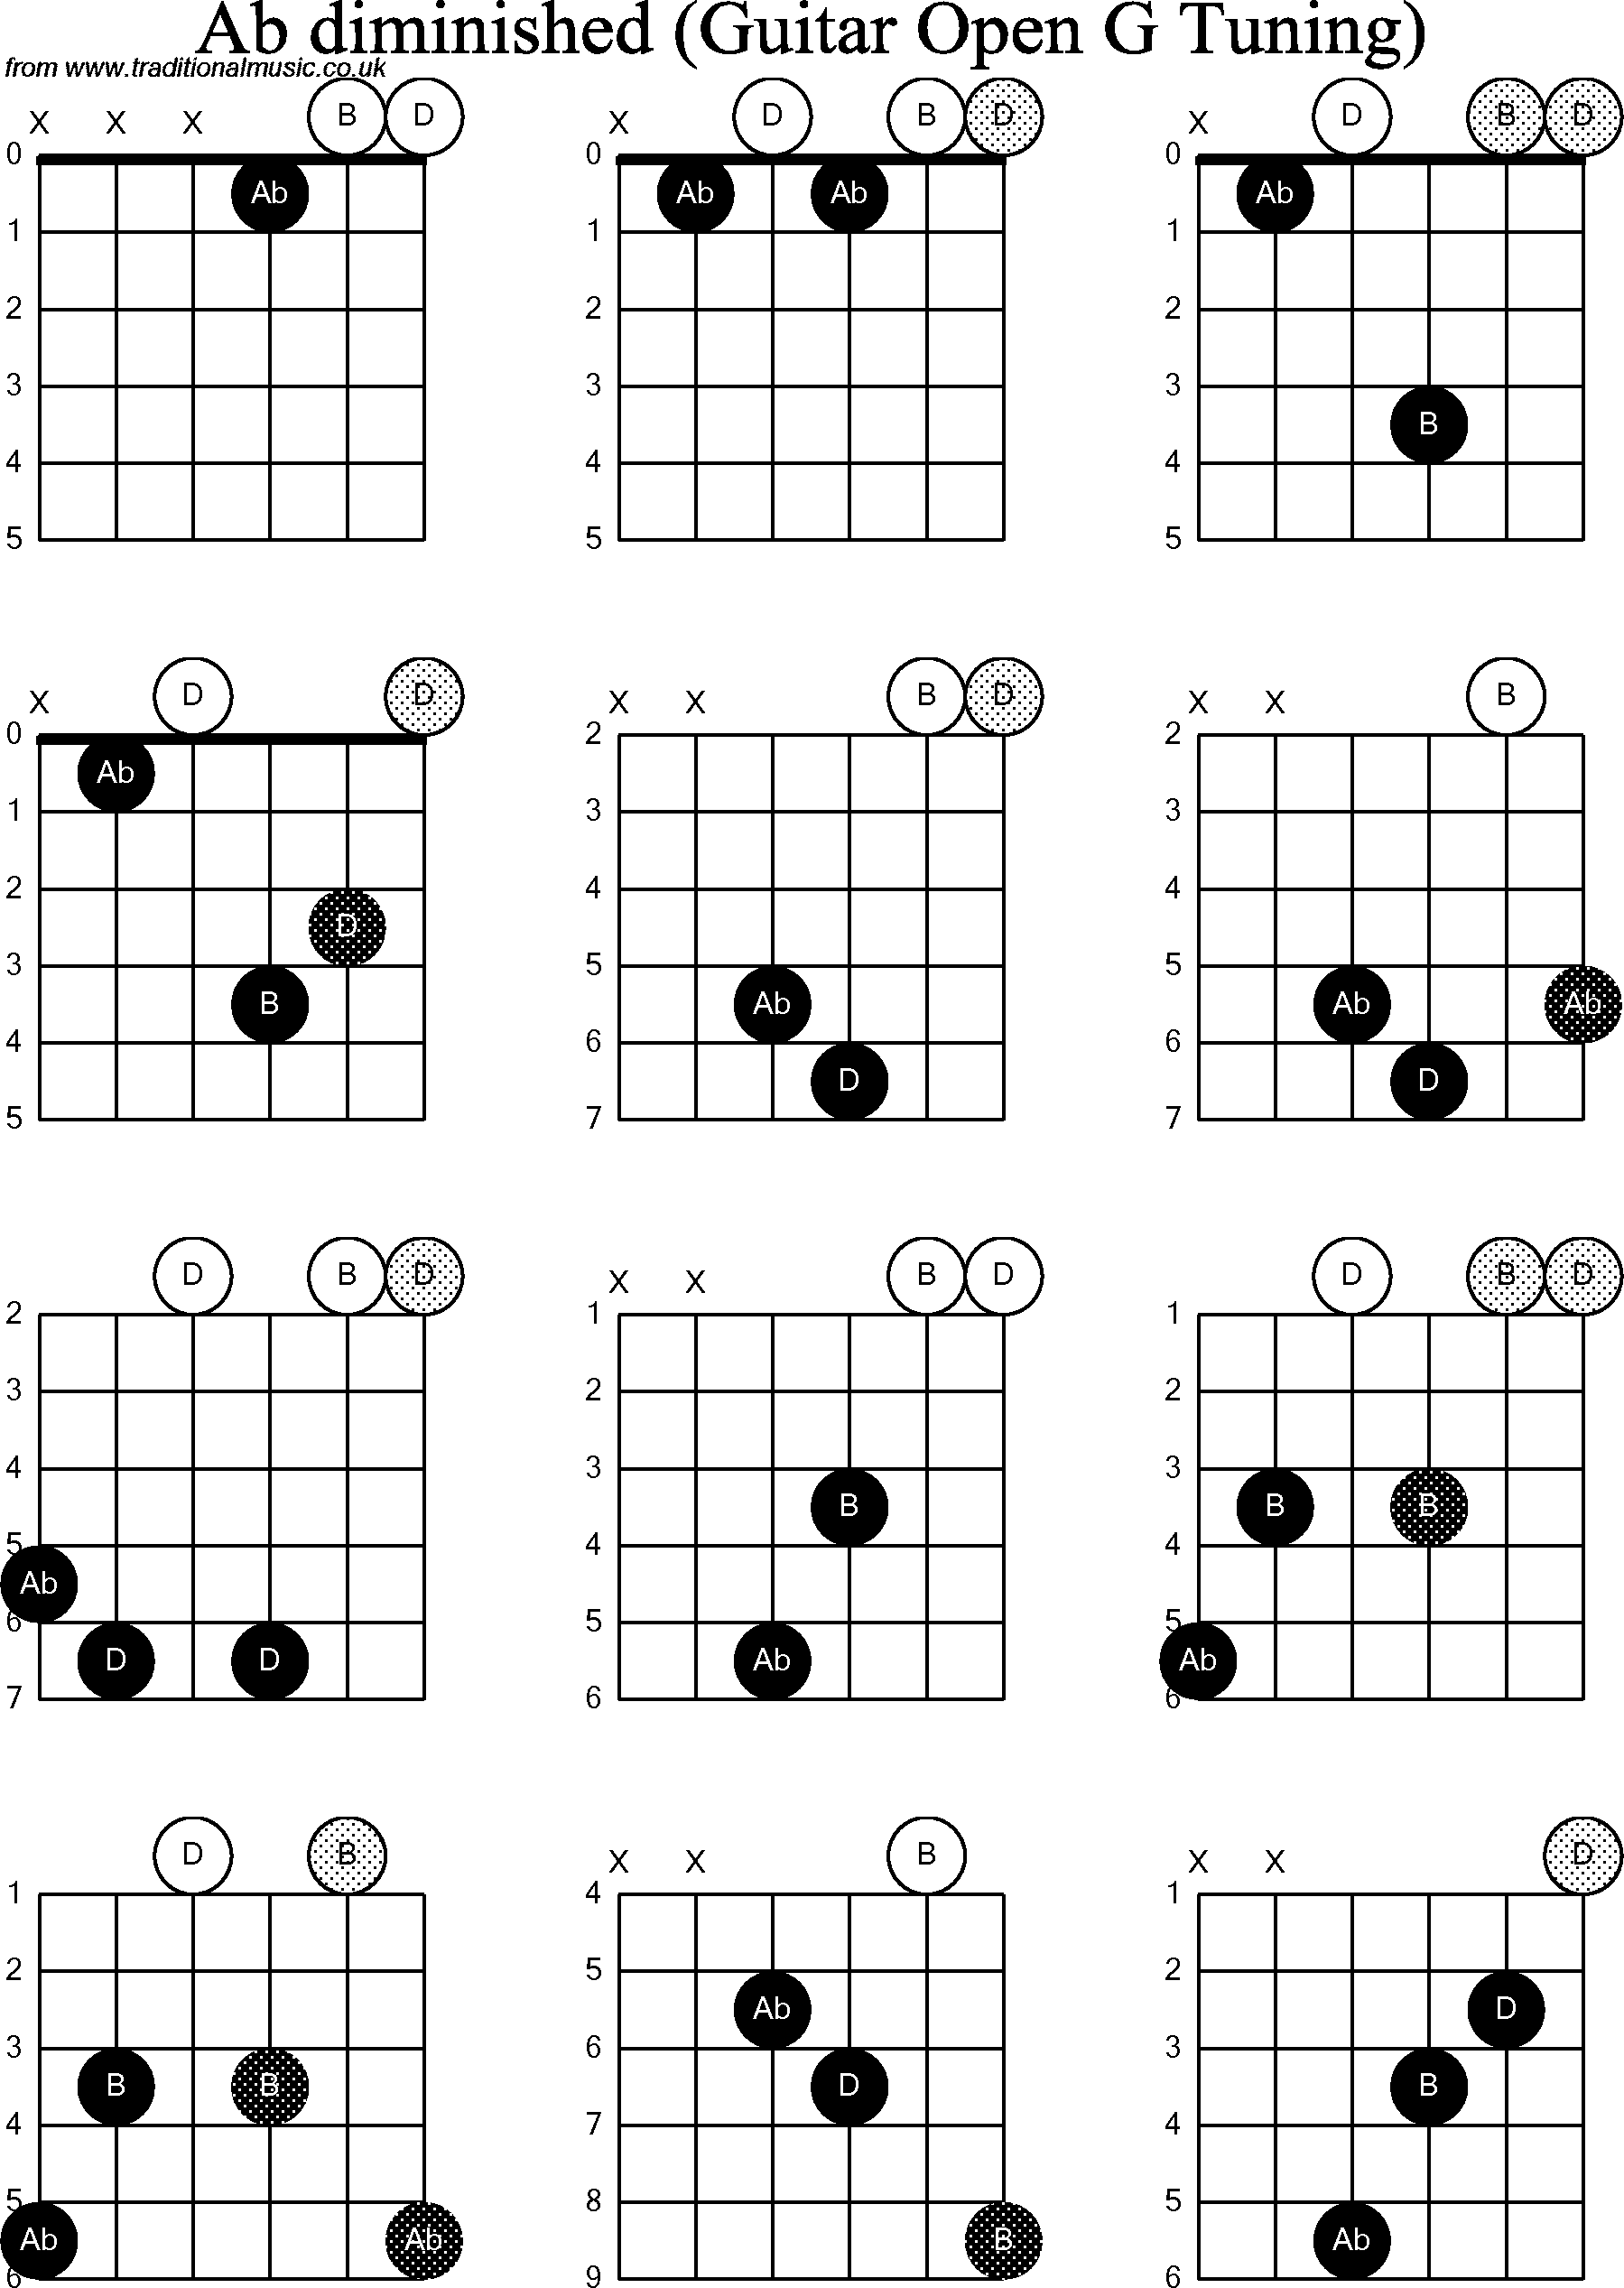 Chord Diagrams For Dobro Ab Diminished